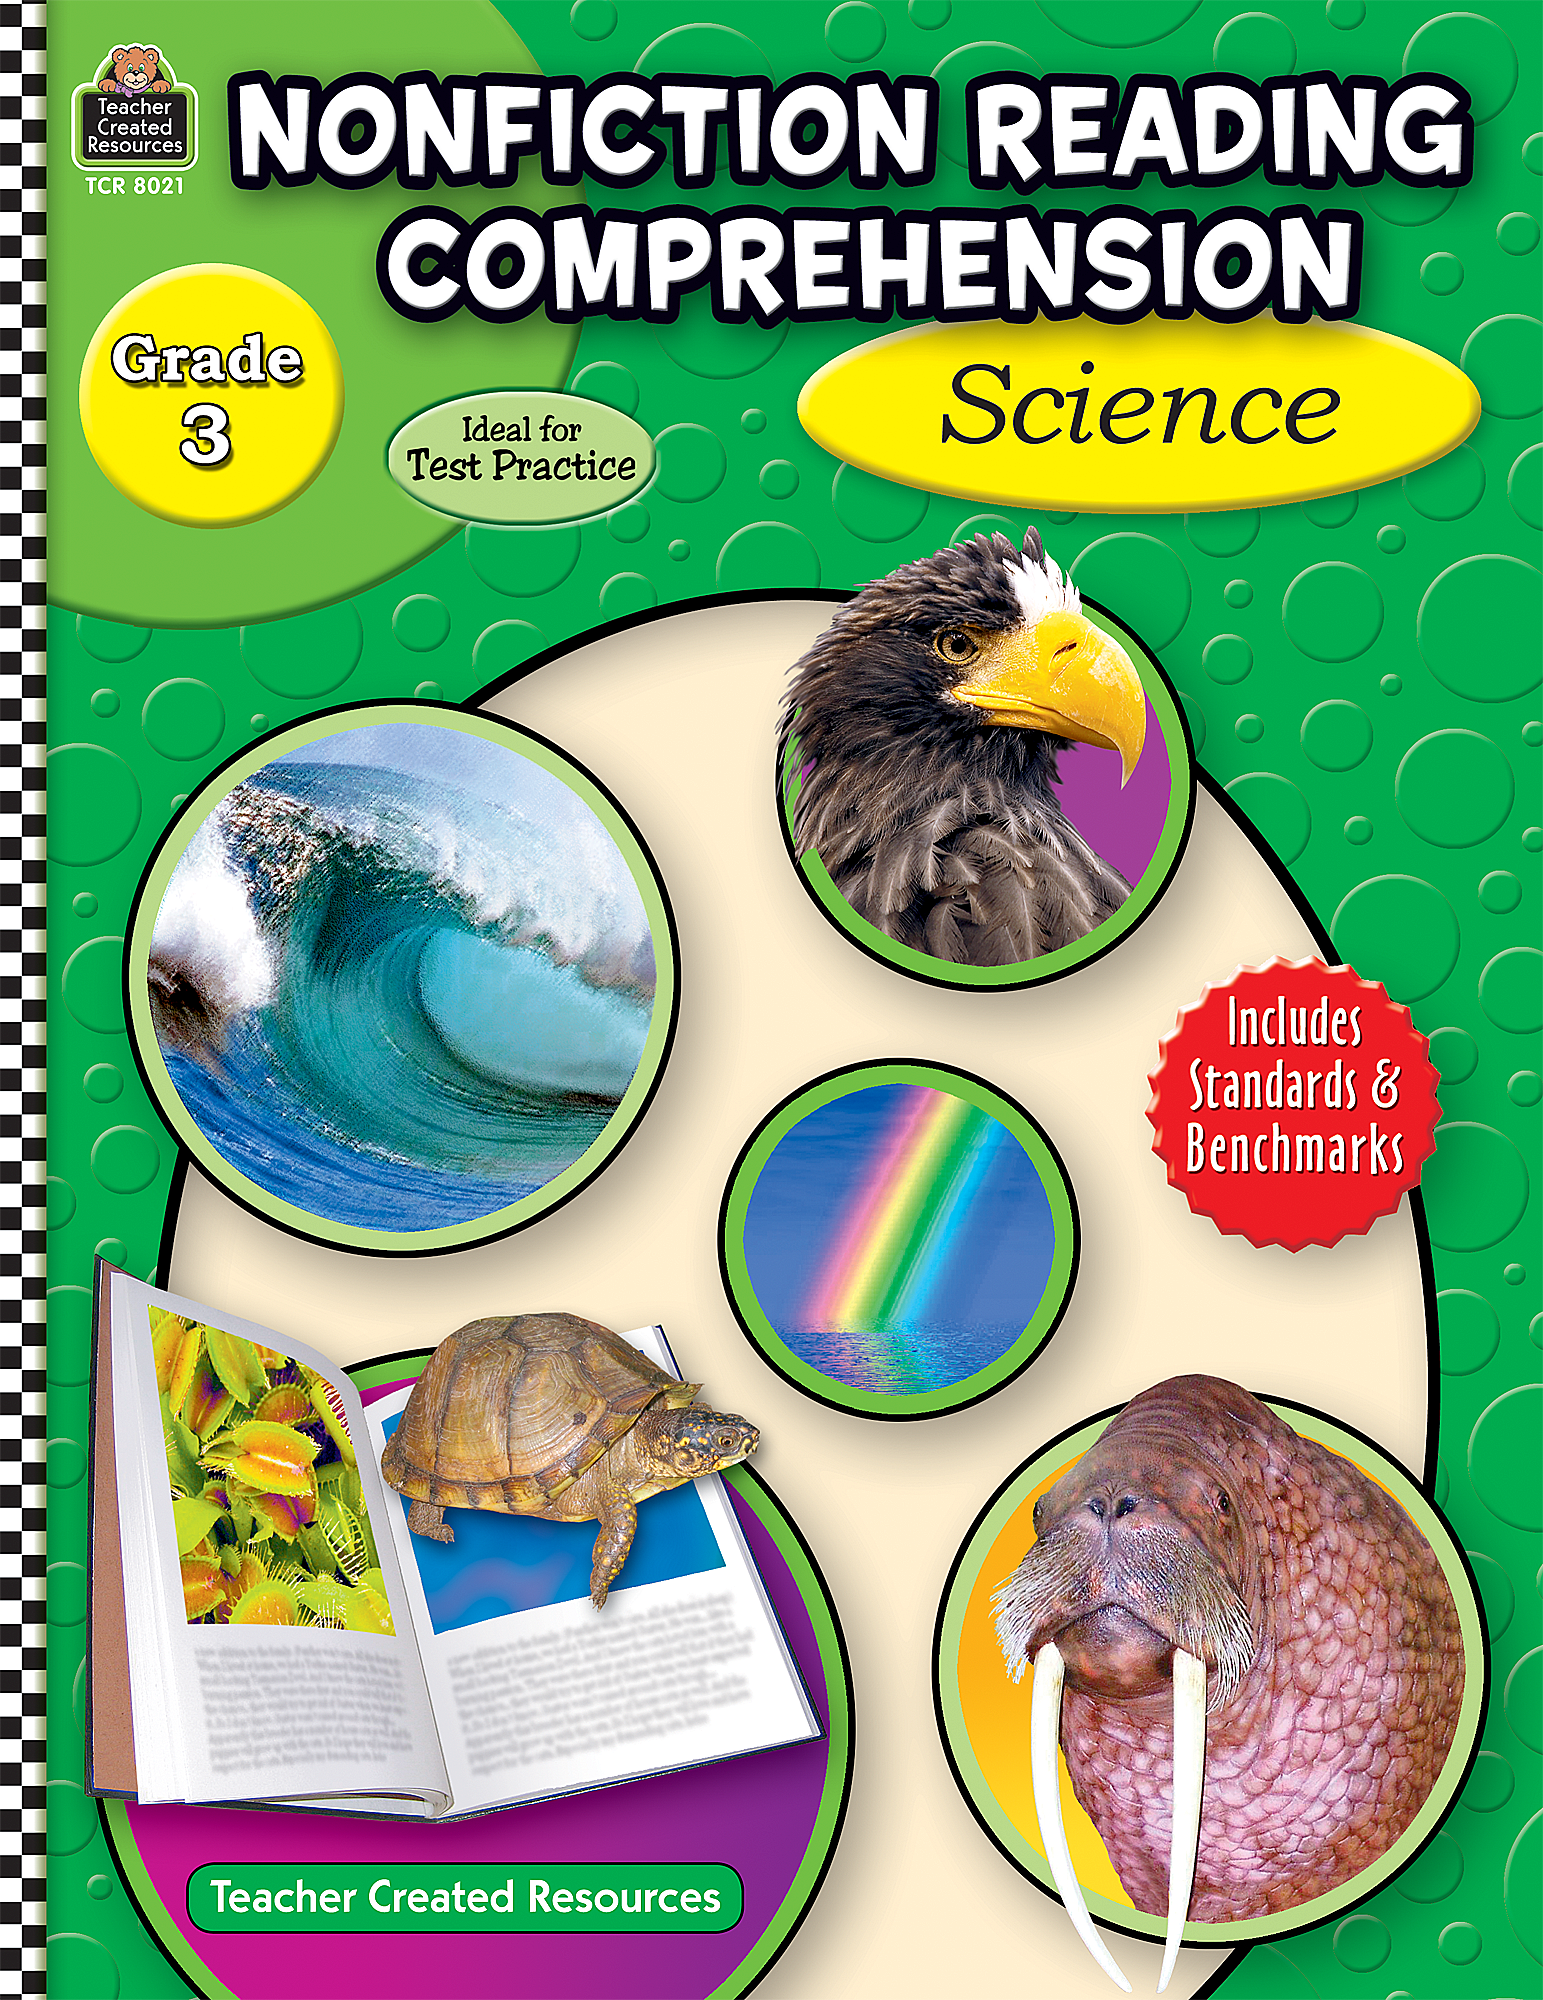 worksheet Nonfiction Reading Comprehension Worksheets nonfiction reading comprehension science grade 3 tcr8021 teacher created resources